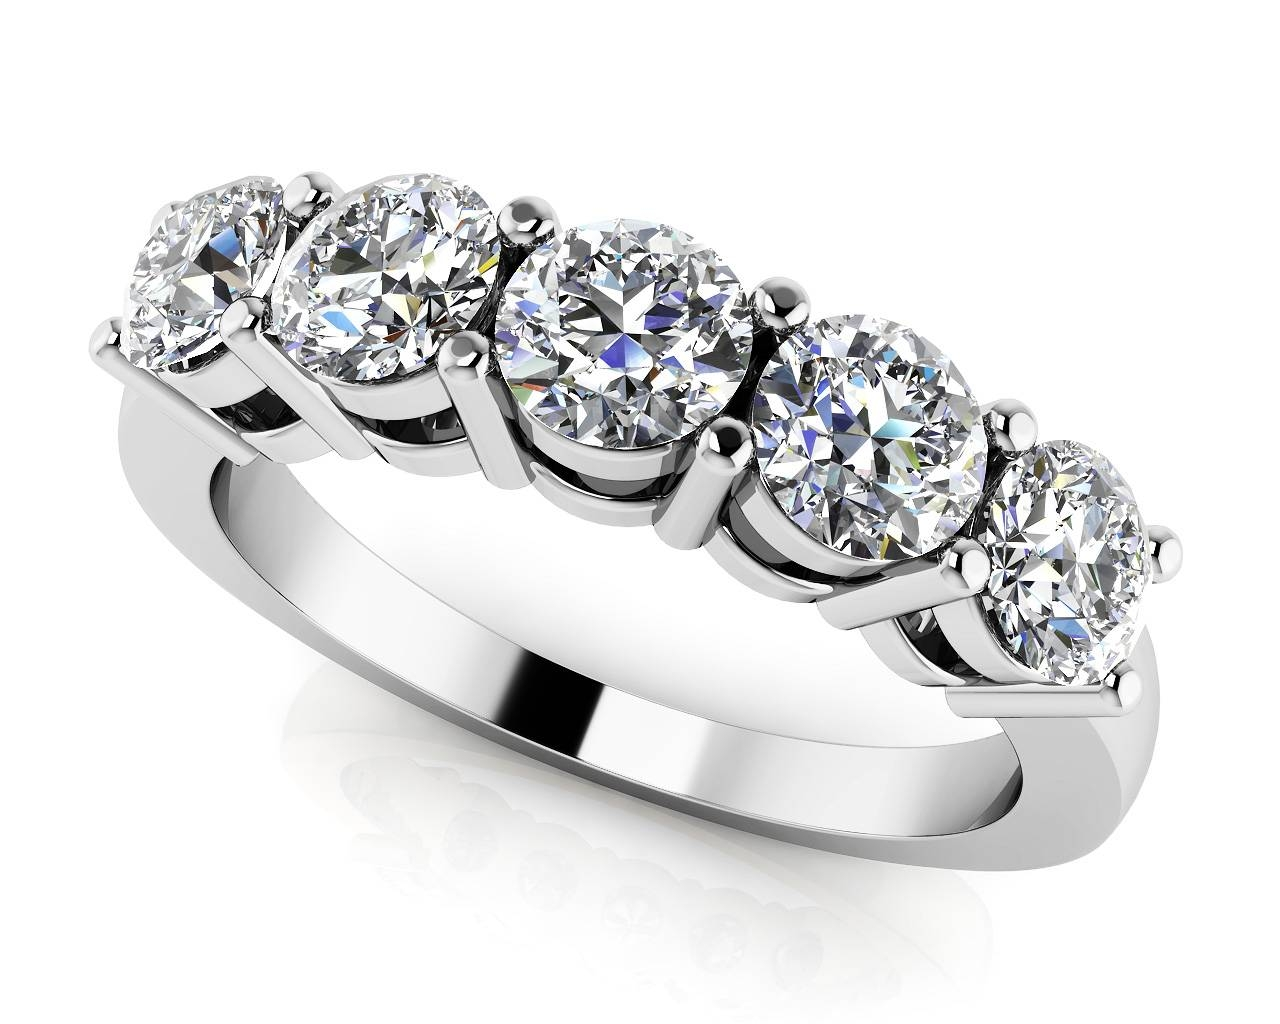 Design Your Own Diamond Anniversary Ring & Eternity Ring Regarding Best And Newest Anniversary Rings Sets (View 6 of 25)